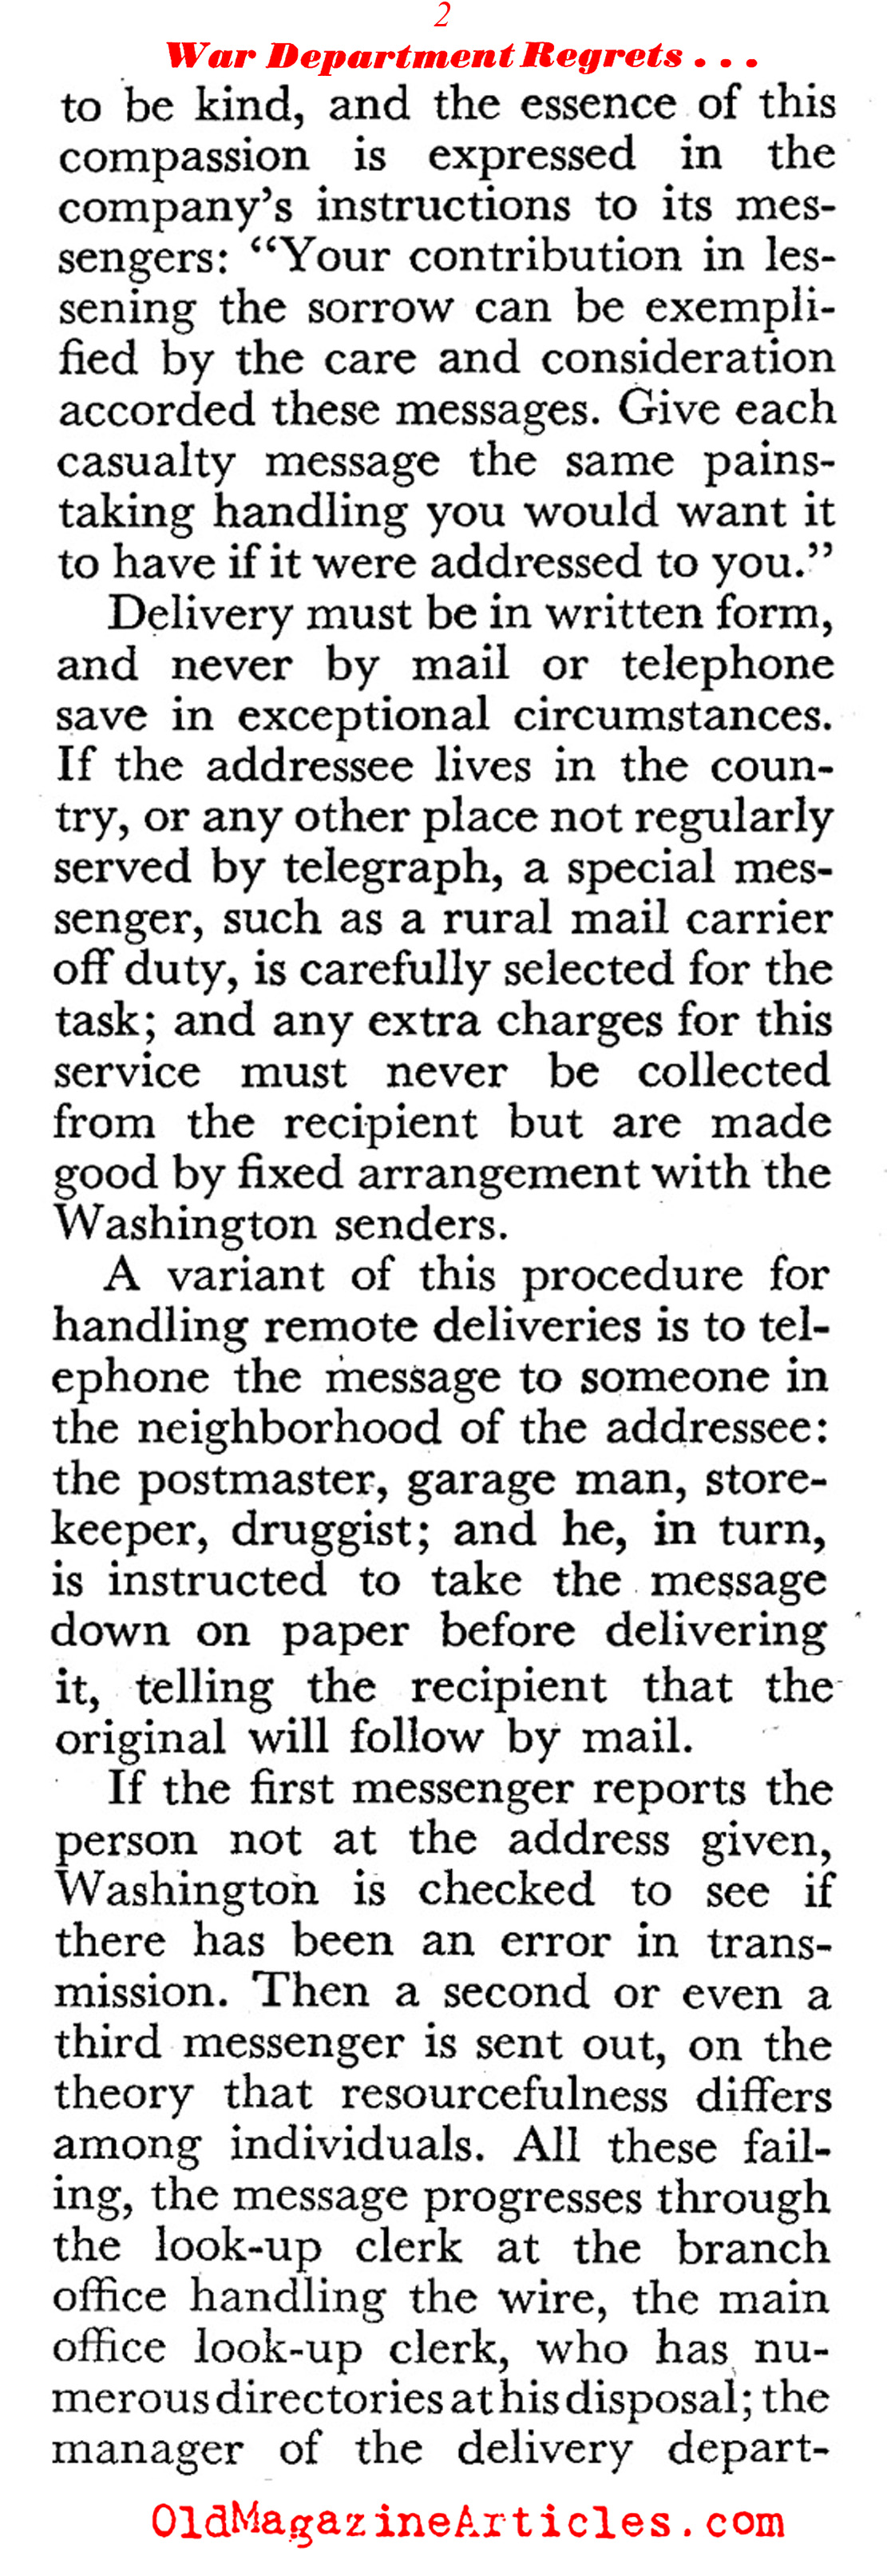 The Most Dreaded Telegram on the Home Front (Coronet Magazine, 1944)